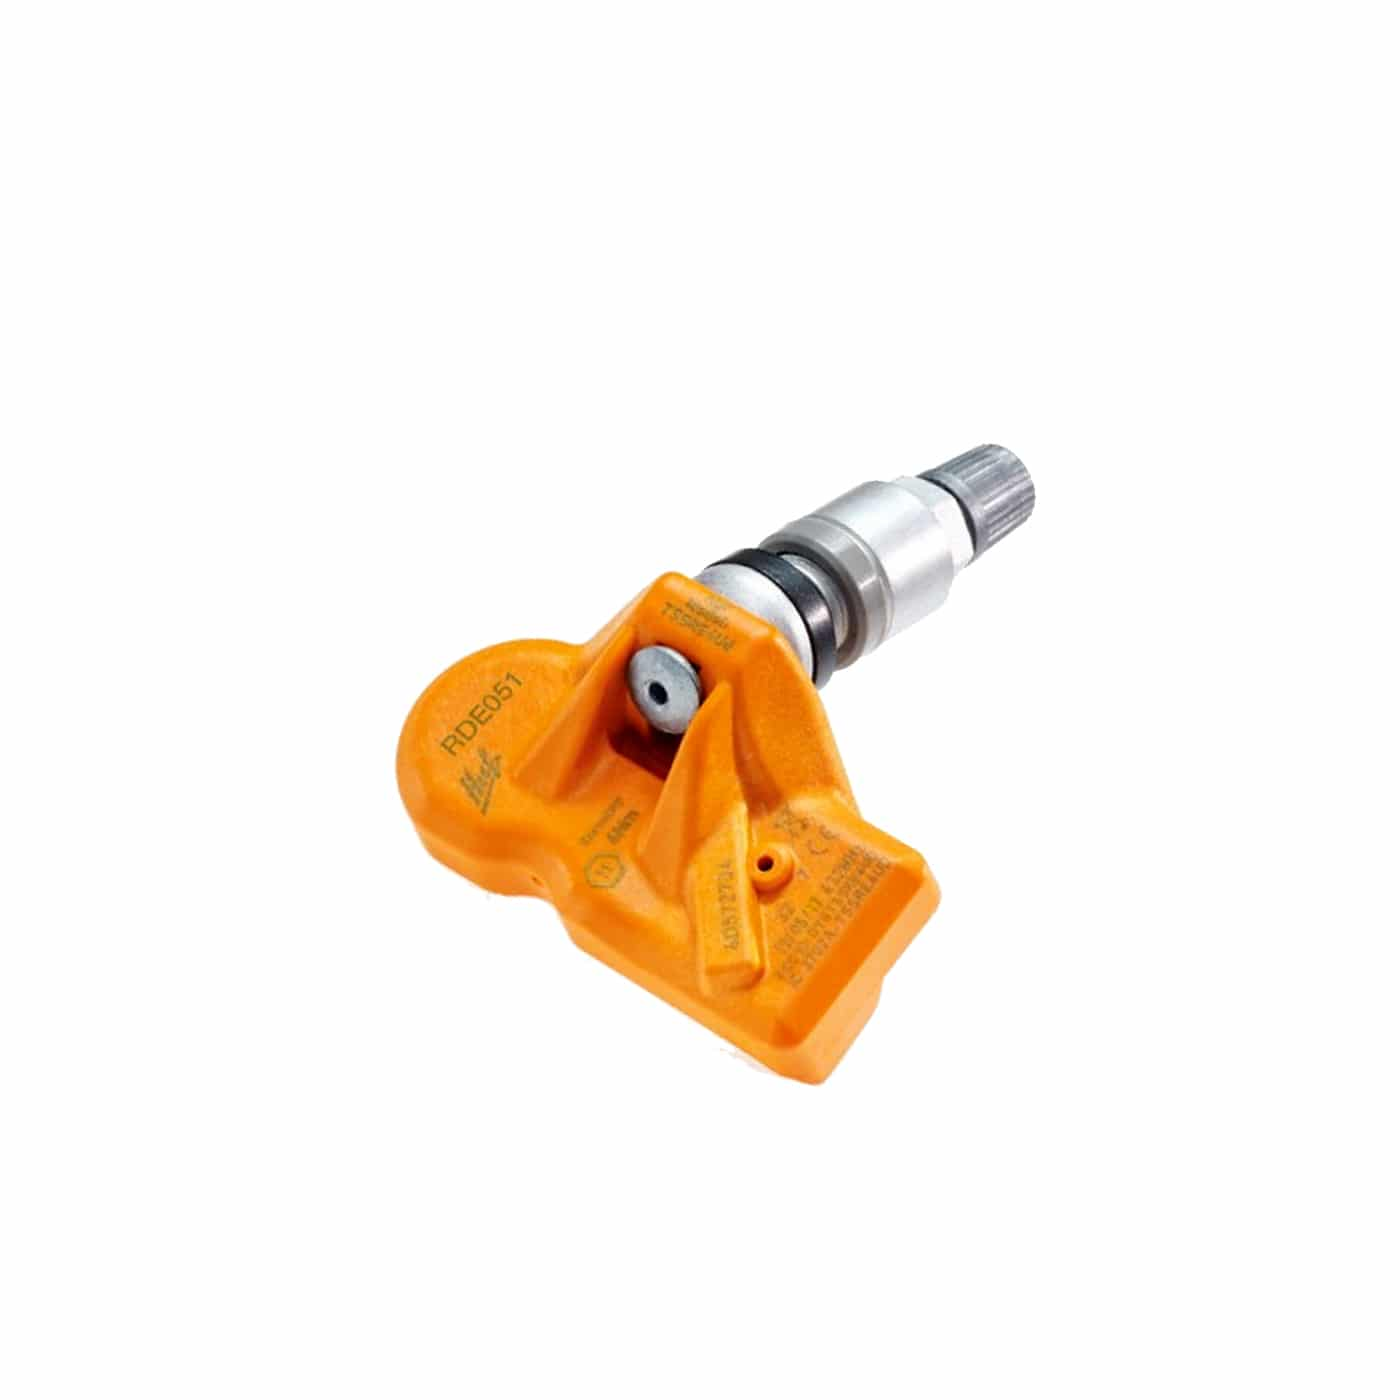 HUF Clamp-in RDE051